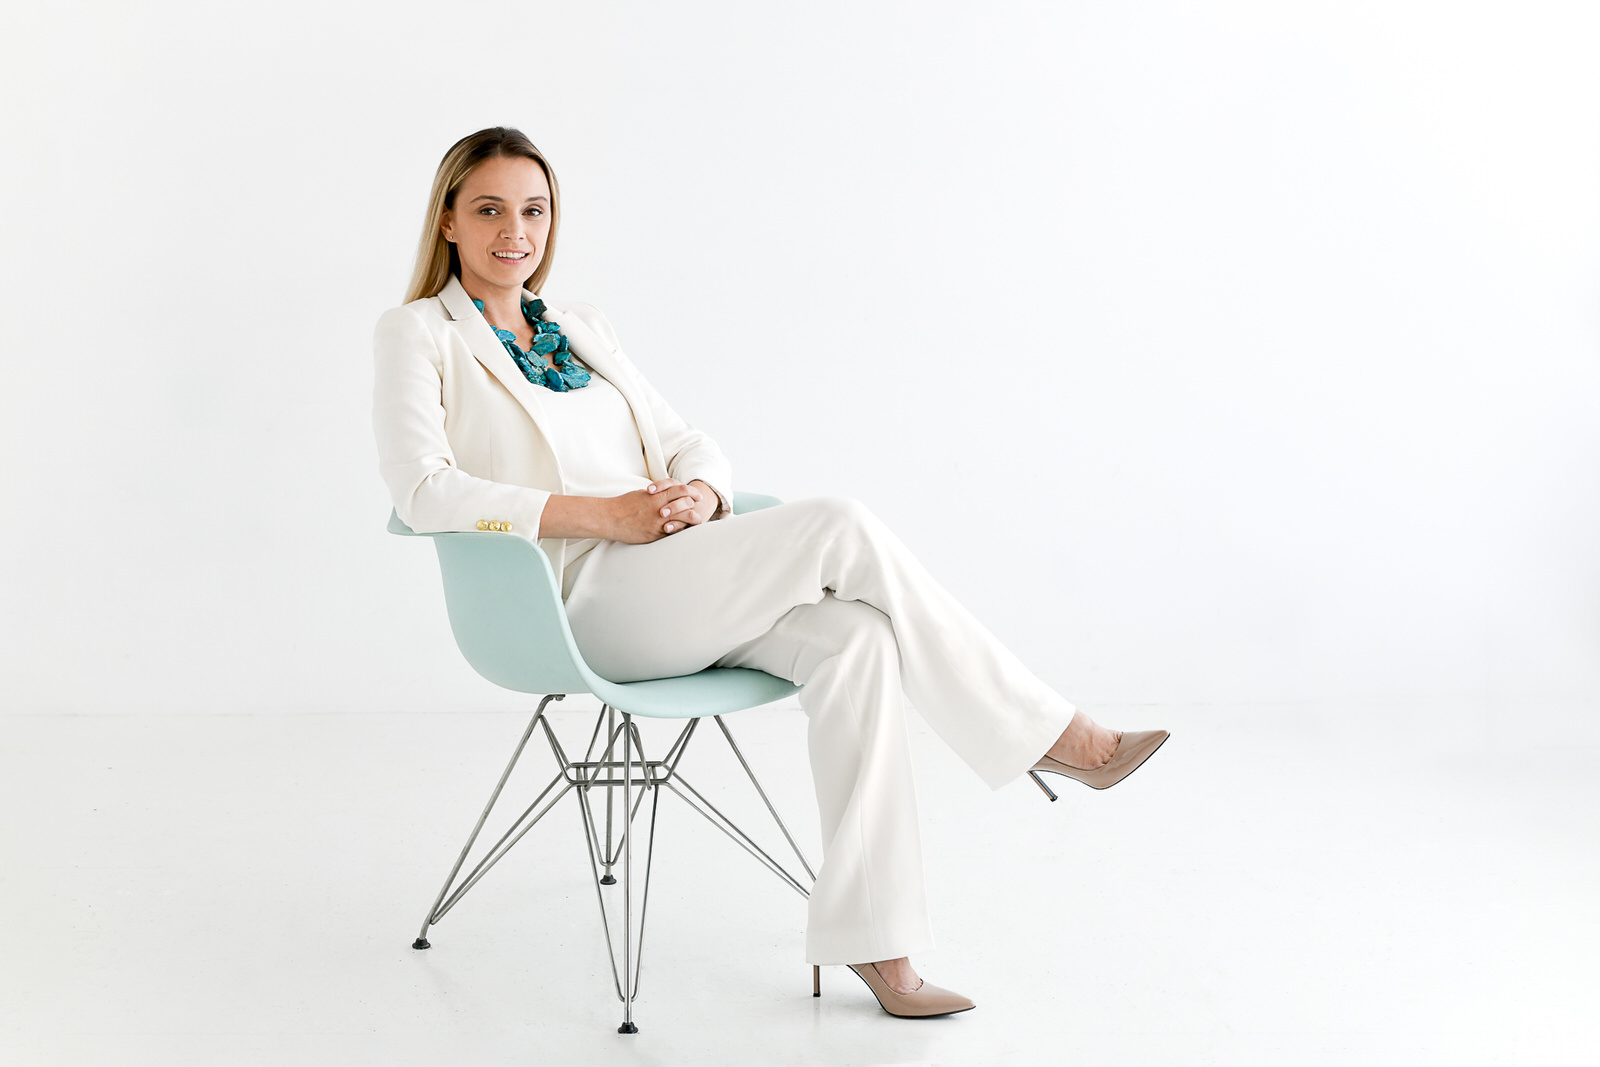 Kon Mari expert Sava wearing a cream suit and turquiose necklace in a white room